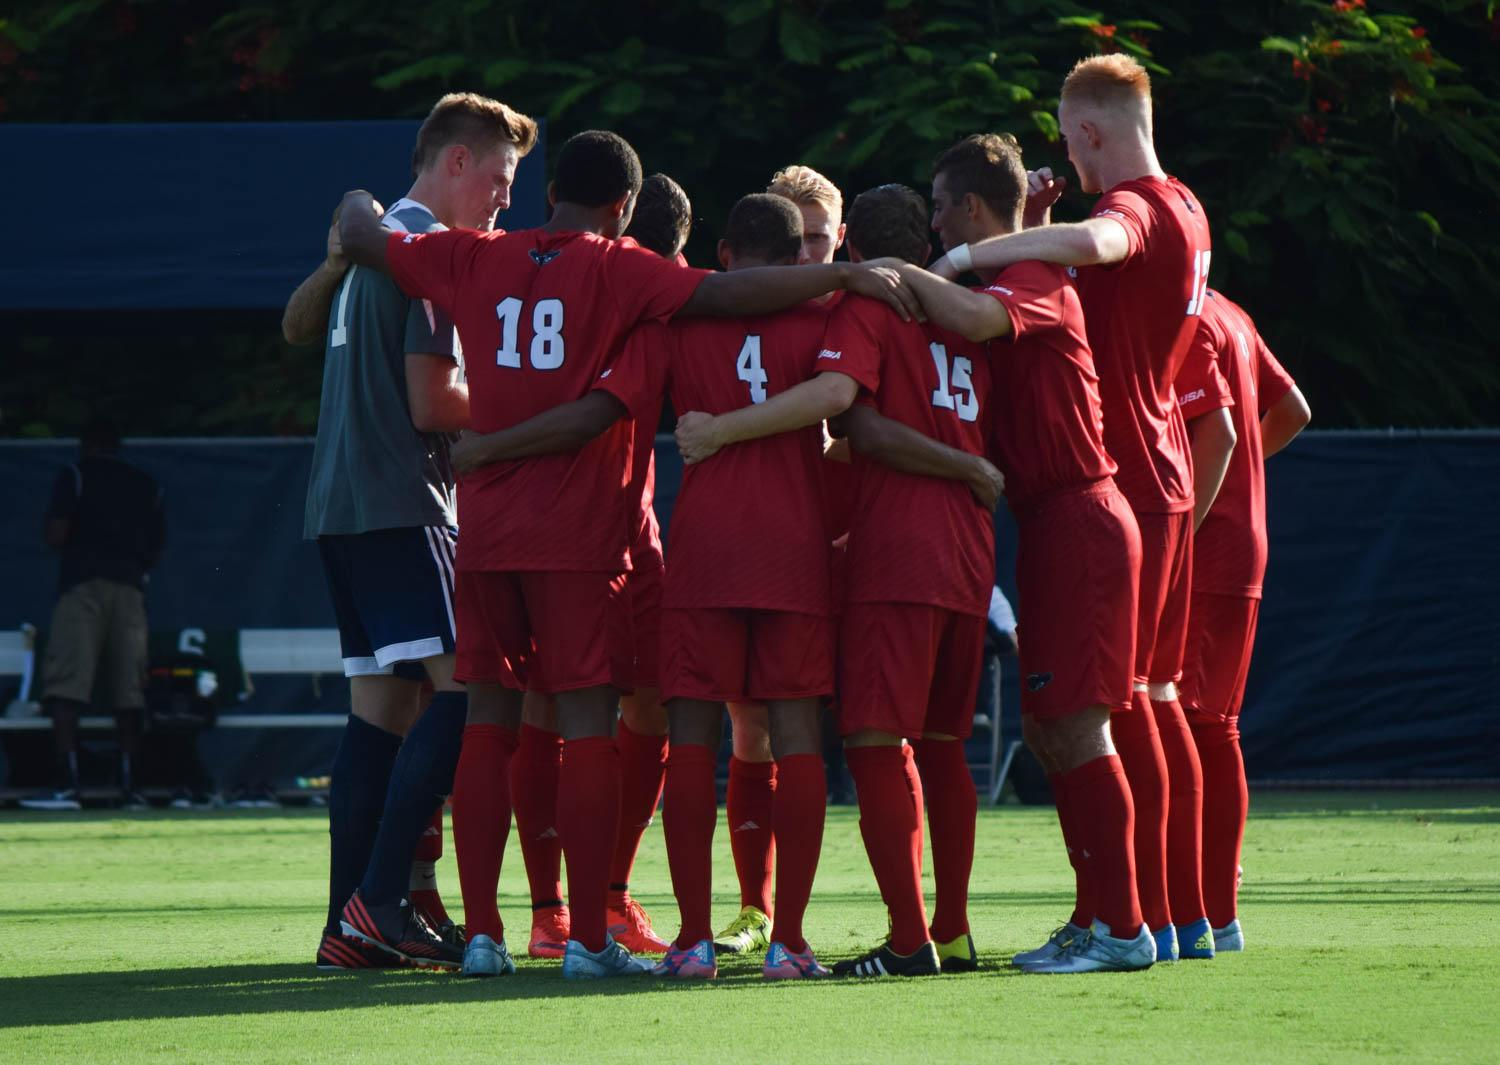 The Mem's Soccer team gathers during their game versus Jacksonville this year. The Owls were unable to gain their first win of the season this weekend, falling to both NIU and Loyola-Chicago. Ryan Lynch|Sports Editor